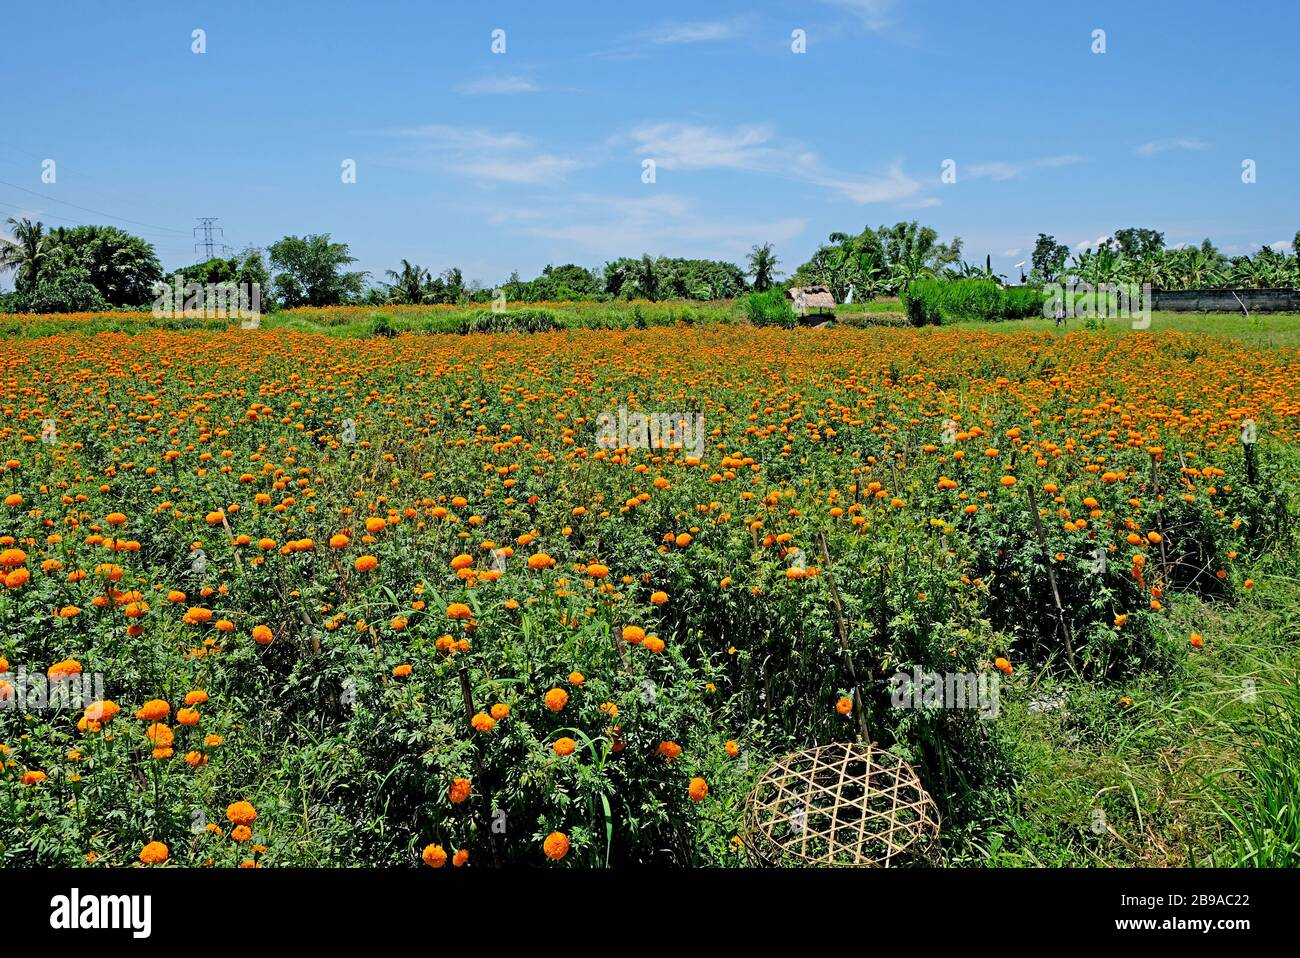 Marigold flower fields. These flowers are used in Bali for religious matters as gifts to Gods. Indonesia. Stock Photo